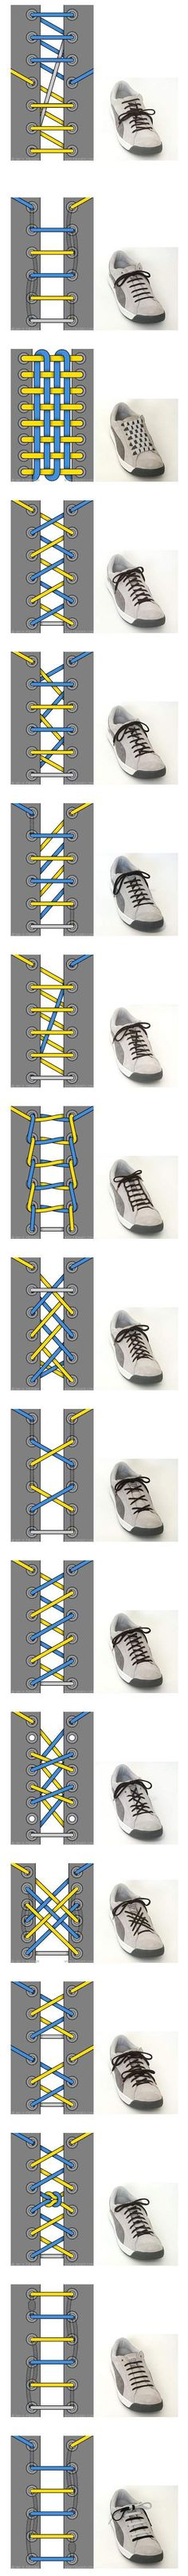 Different Ways Of Tying Your Shoes